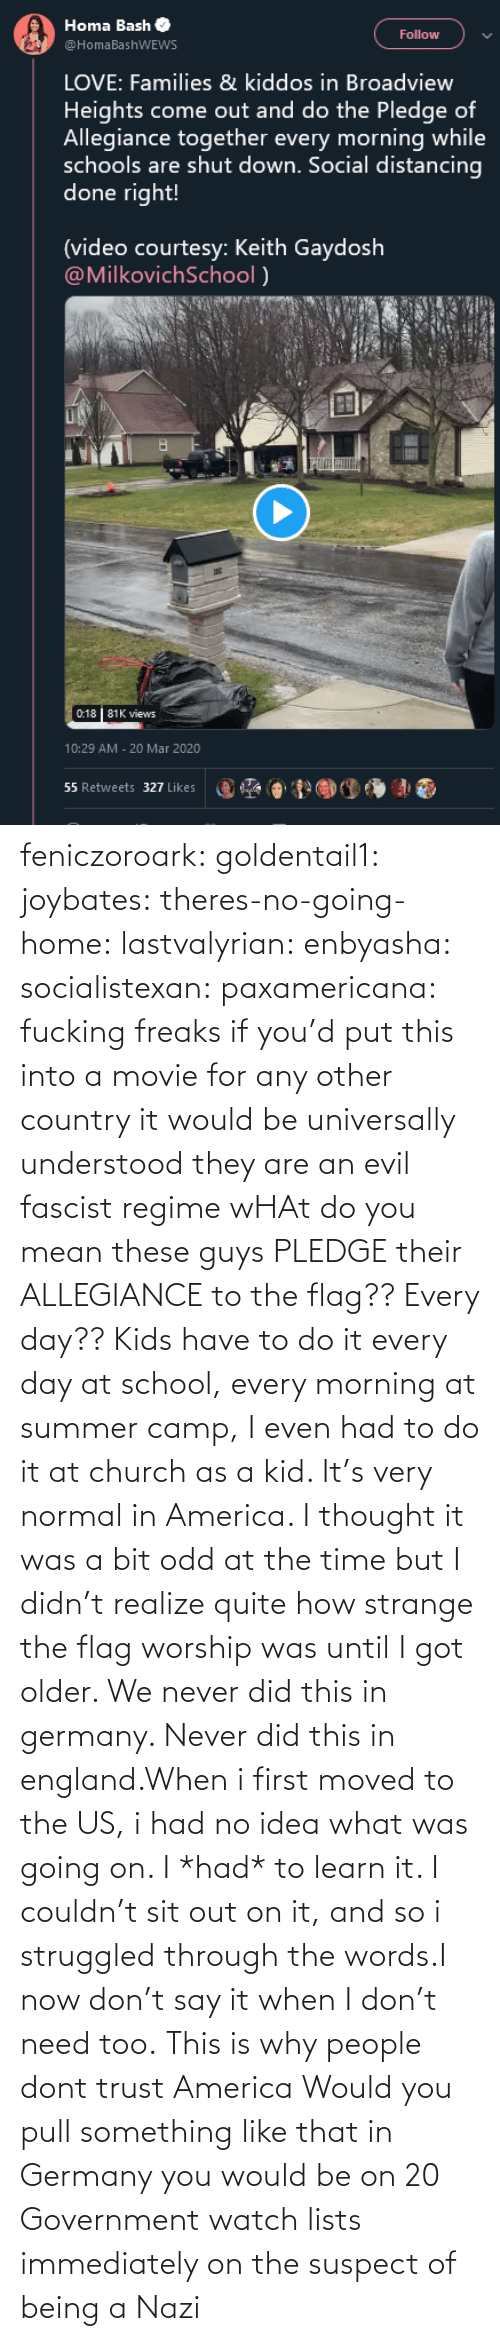 Pull: feniczoroark:  goldentail1:  joybates:  theres-no-going-home:  lastvalyrian:  enbyasha:  socialistexan:  paxamericana: fucking freaks       if you'd put this into a movie for any other country it would be universally understood they are an evil fascist regime    wHAt do you mean these guys PLEDGE their ALLEGIANCE to the flag?? Every day??   Kids have to do it every day at school, every morning at summer camp, I even had to do it at church as a kid. It's very normal in America. I thought it was a bit odd at the time but I didn't realize quite how strange the flag worship was until I got older.    We never did this in germany. Never did this in england.When i first moved to the US, i had no idea what was going on. I *had* to learn it. I couldn't sit out on it, and so i struggled through the words.I now don't say it when I don't need too.   This is why people dont trust America    Would you pull something like that in Germany you would be on 20 Government watch lists immediately on the suspect of being a Nazi